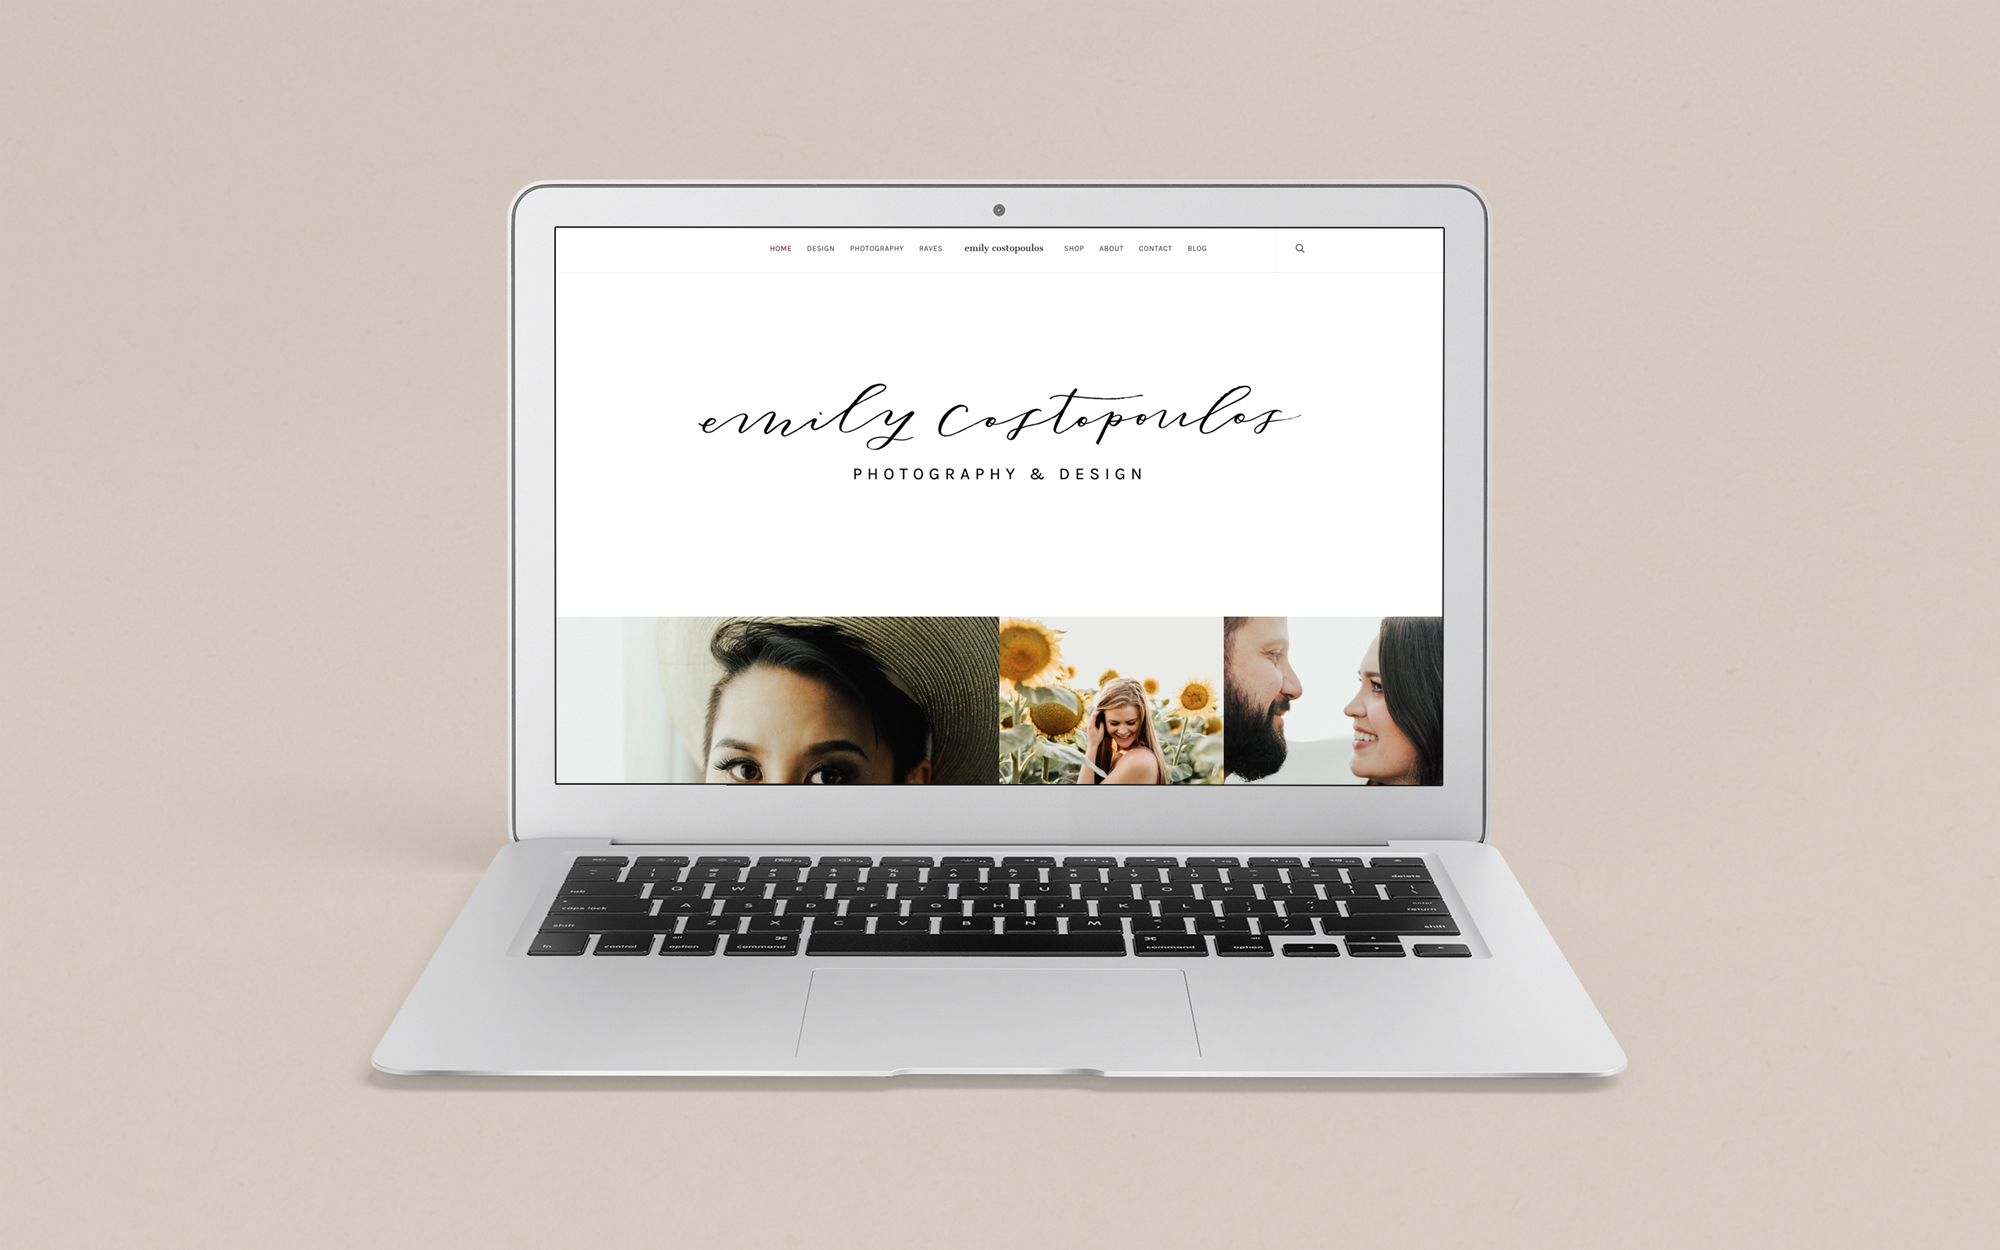 Website Design for Photographer by Haley Grand